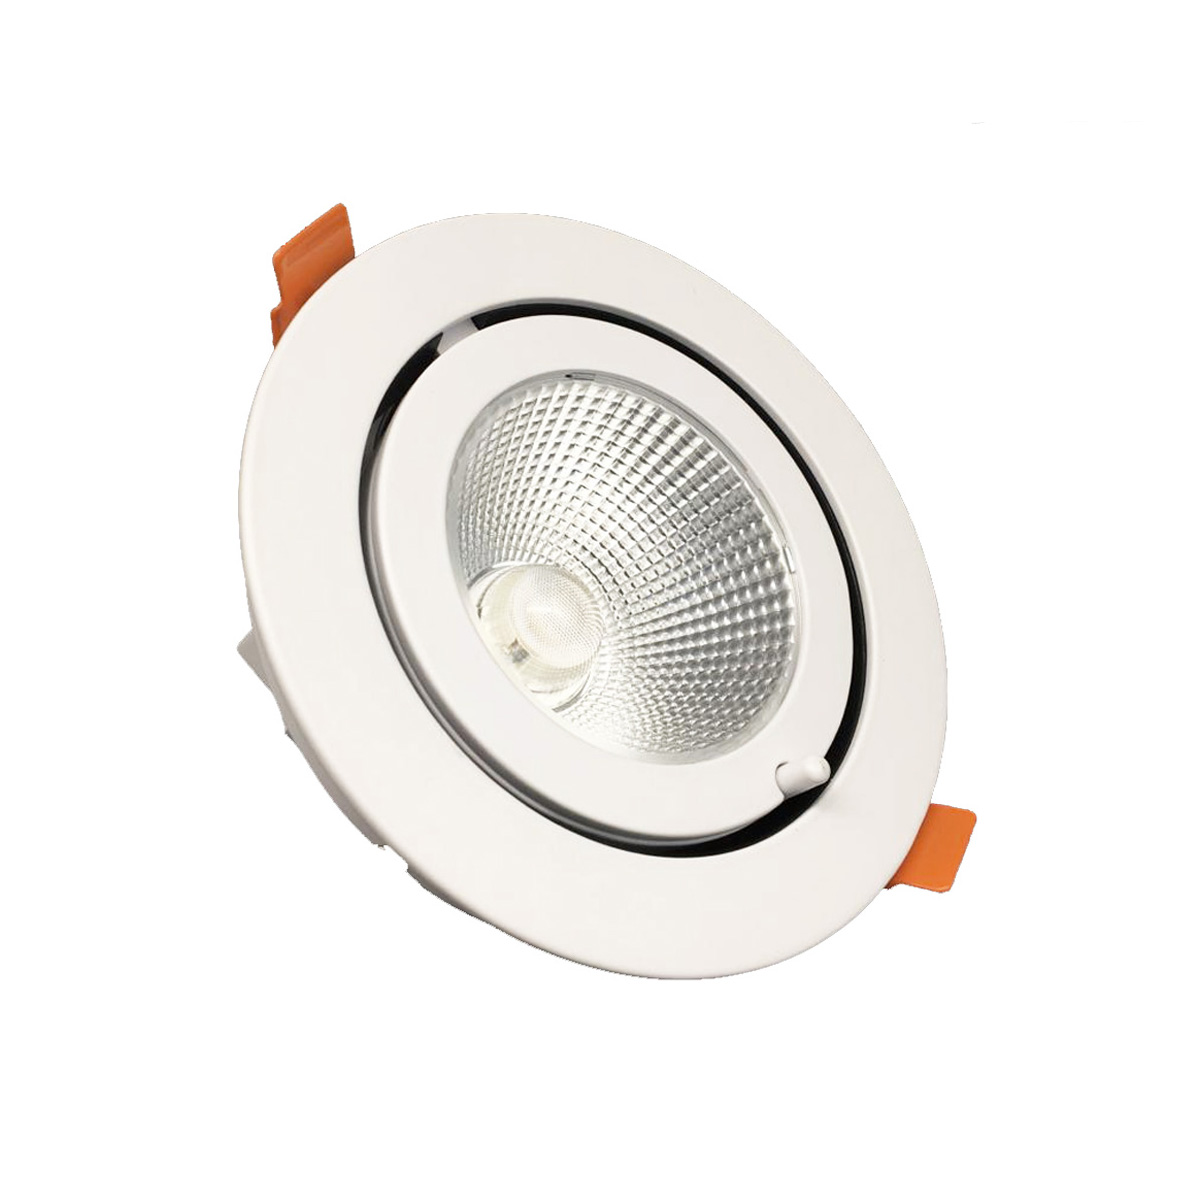 Faro , construido Led COB 30W ajustable Mini 360 horizontal y vertical 90